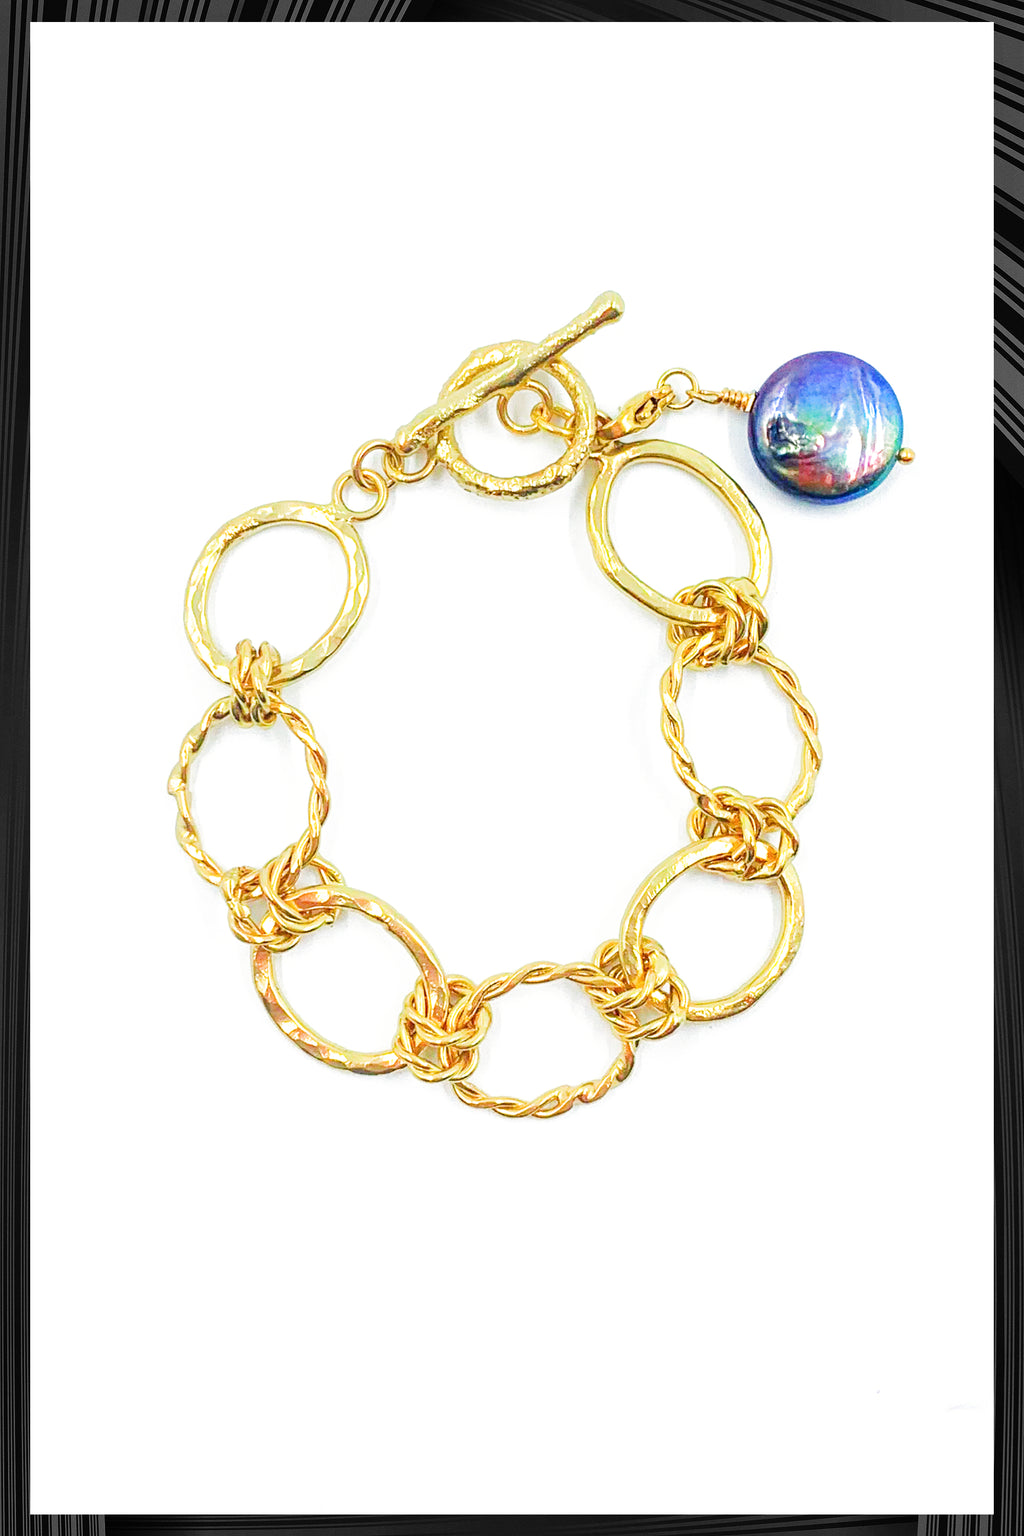 Caribe Bracelet | Free Delivery - Quick Shipping